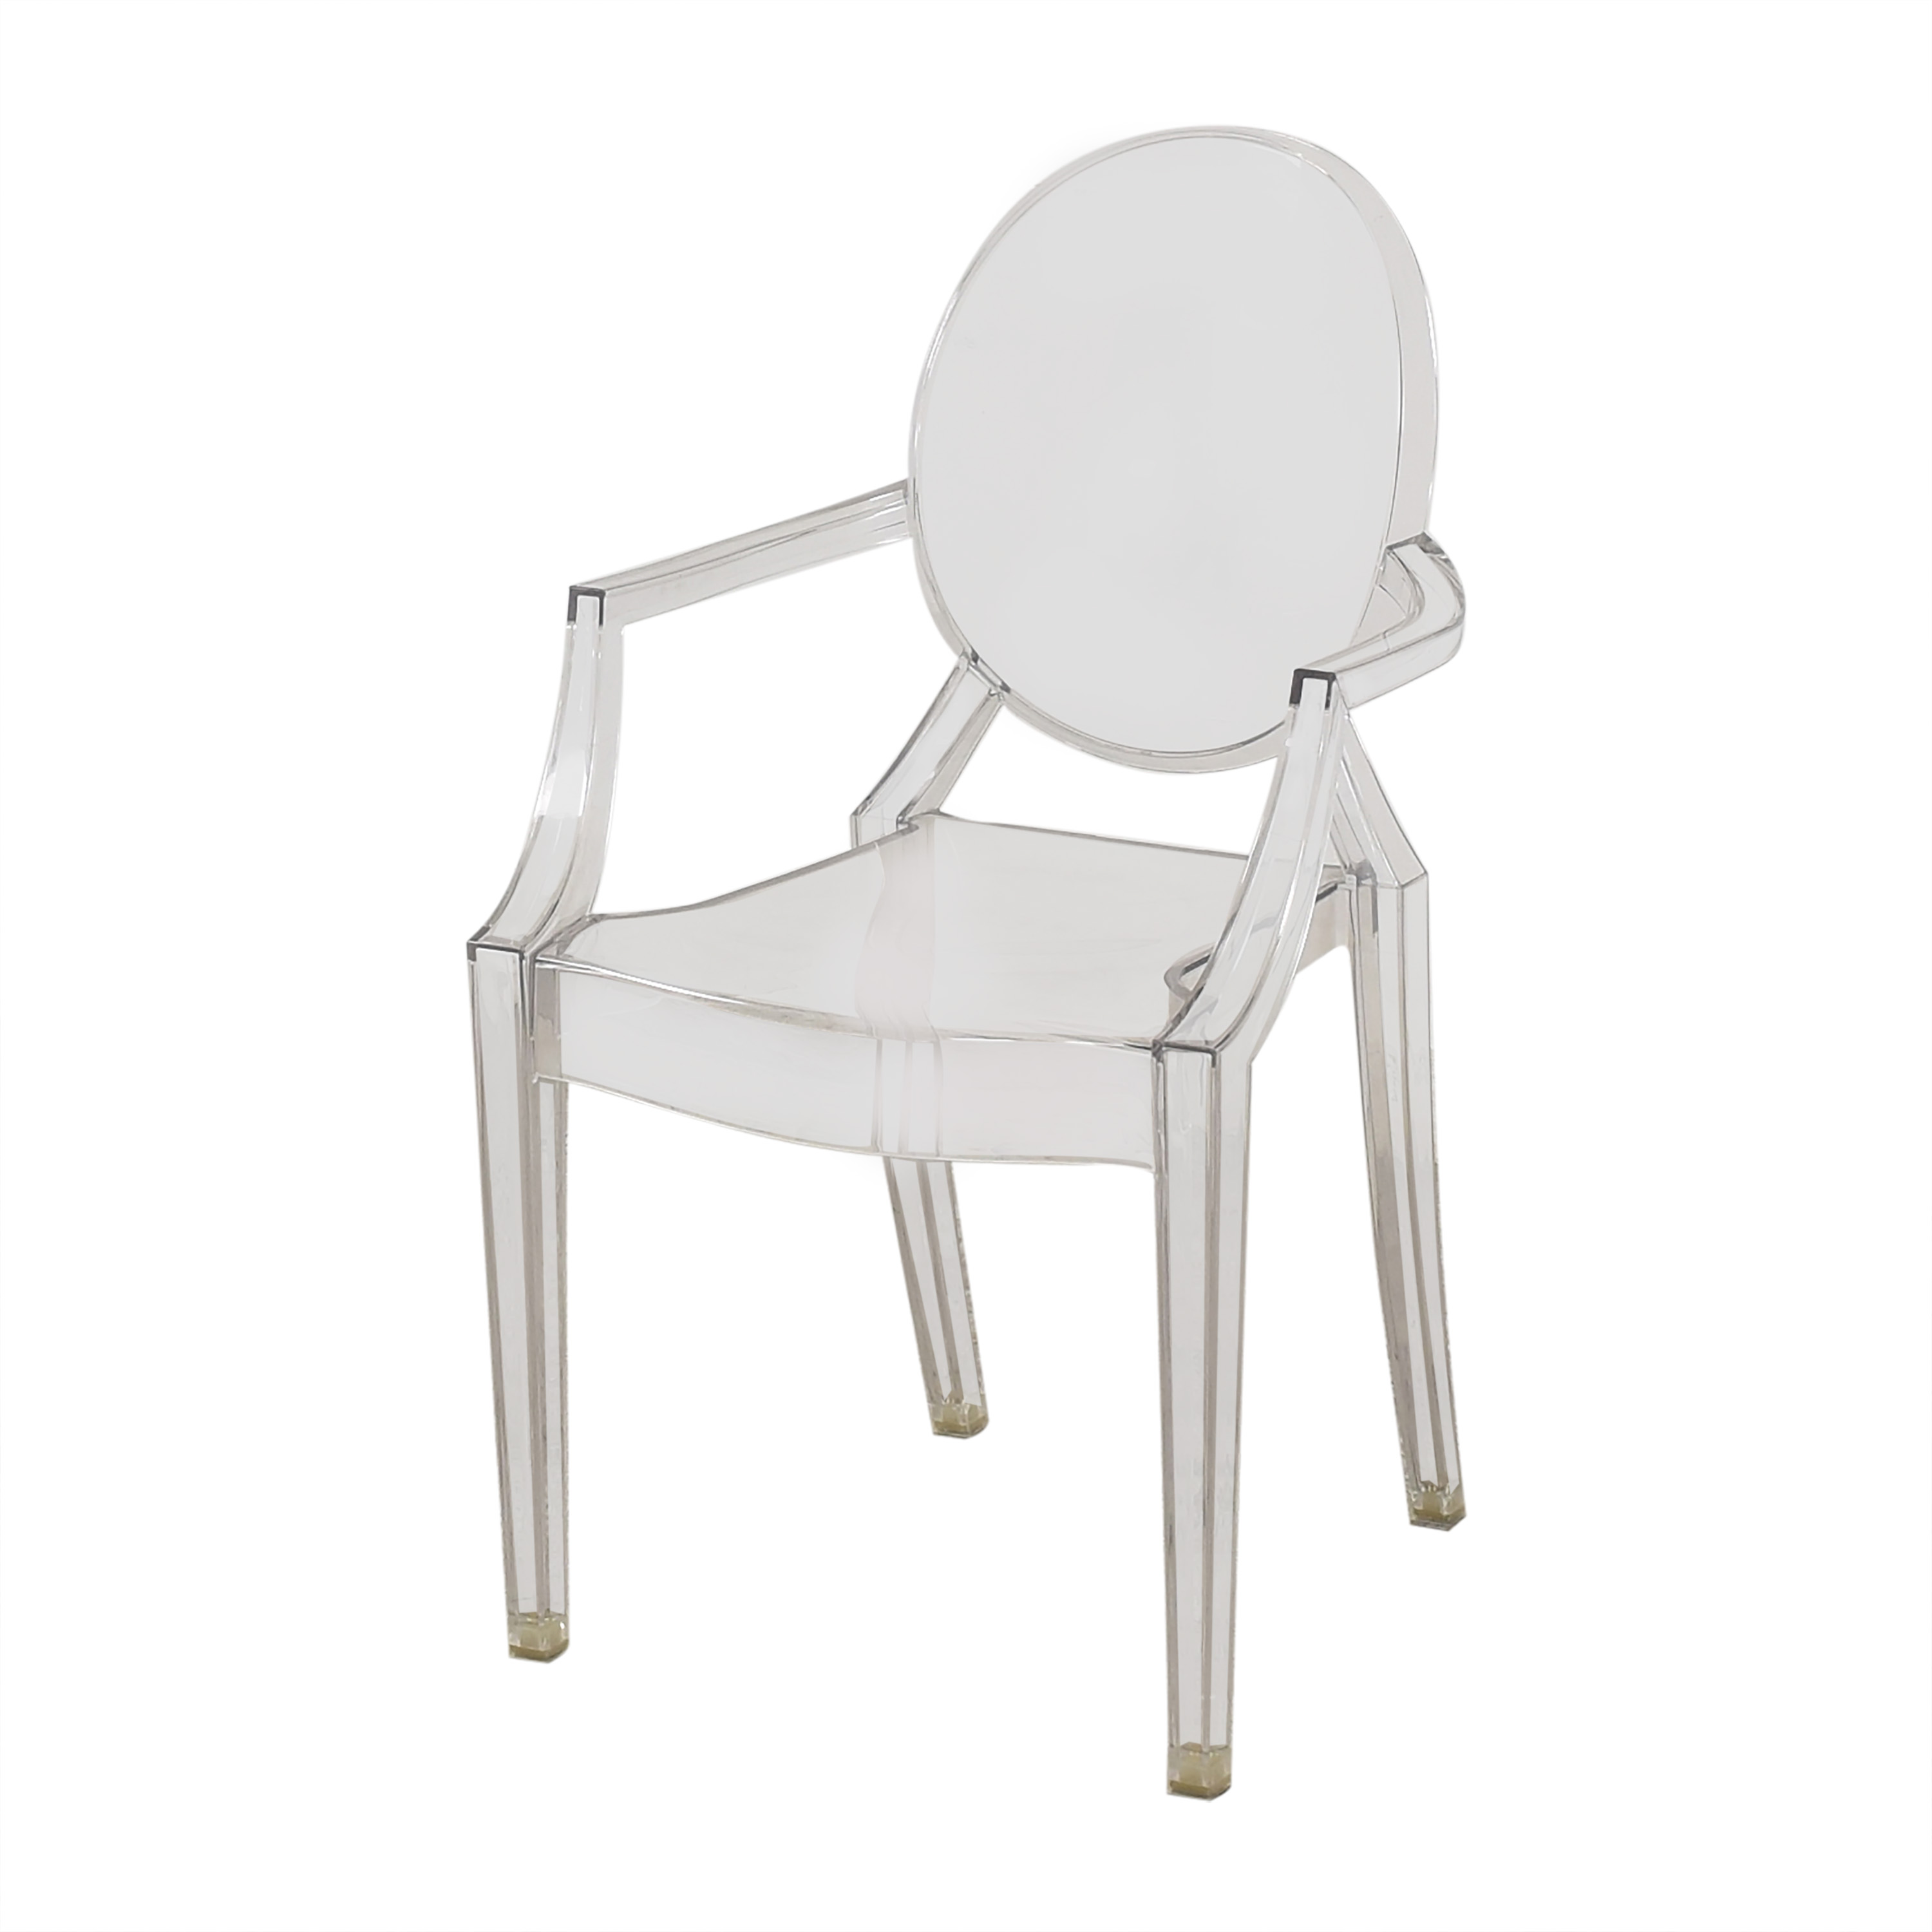 Kartell Kartell Louis Ghost Chairs clear